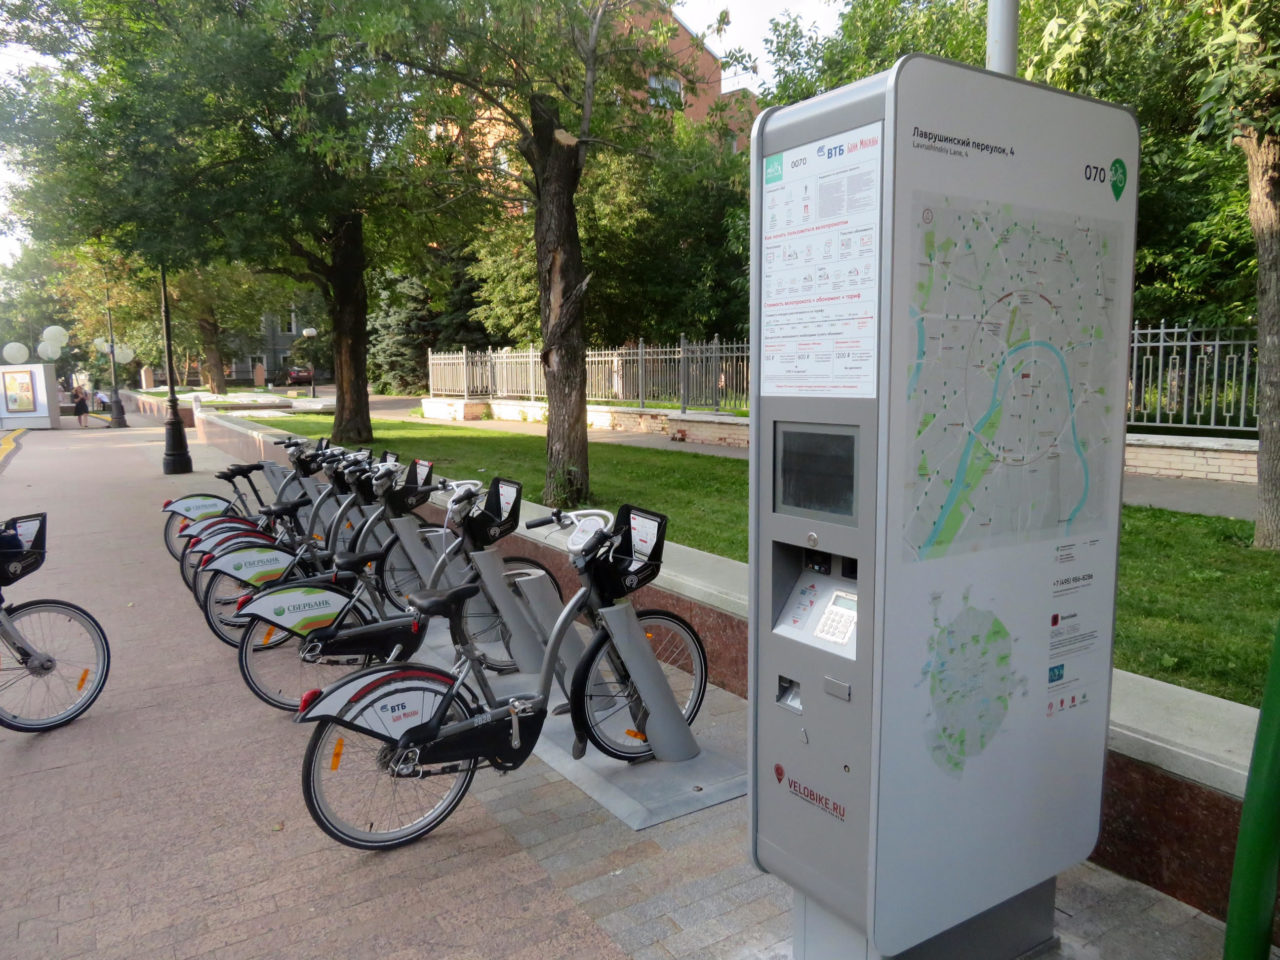 Moscow: Now a World-Class Destination ~ Bike Rental Station